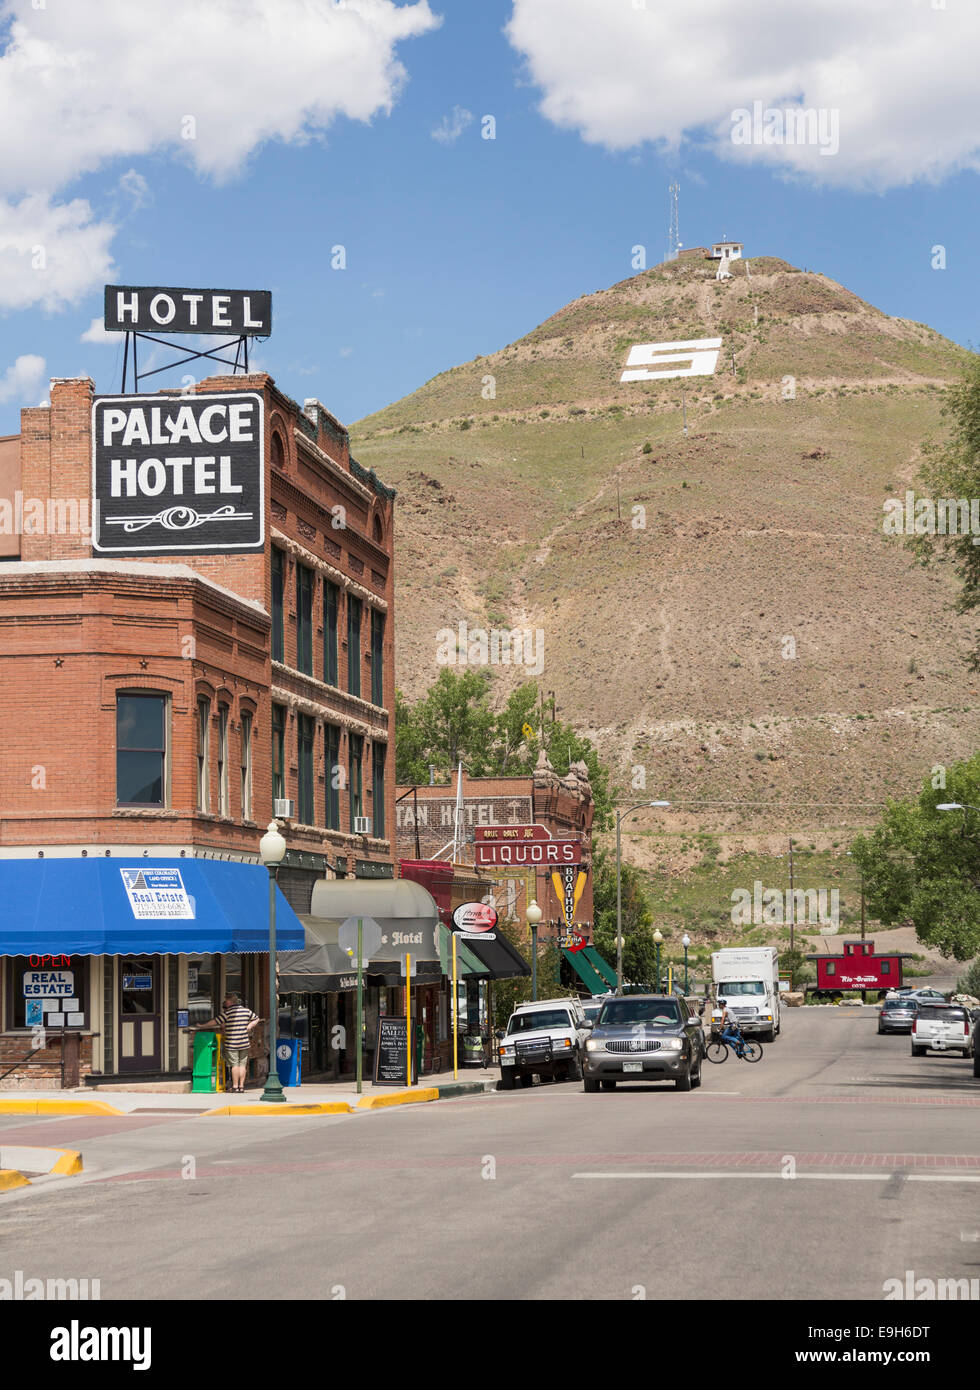 Main street in Salida, Colorado, USA - with hotel and stores - Stock Image